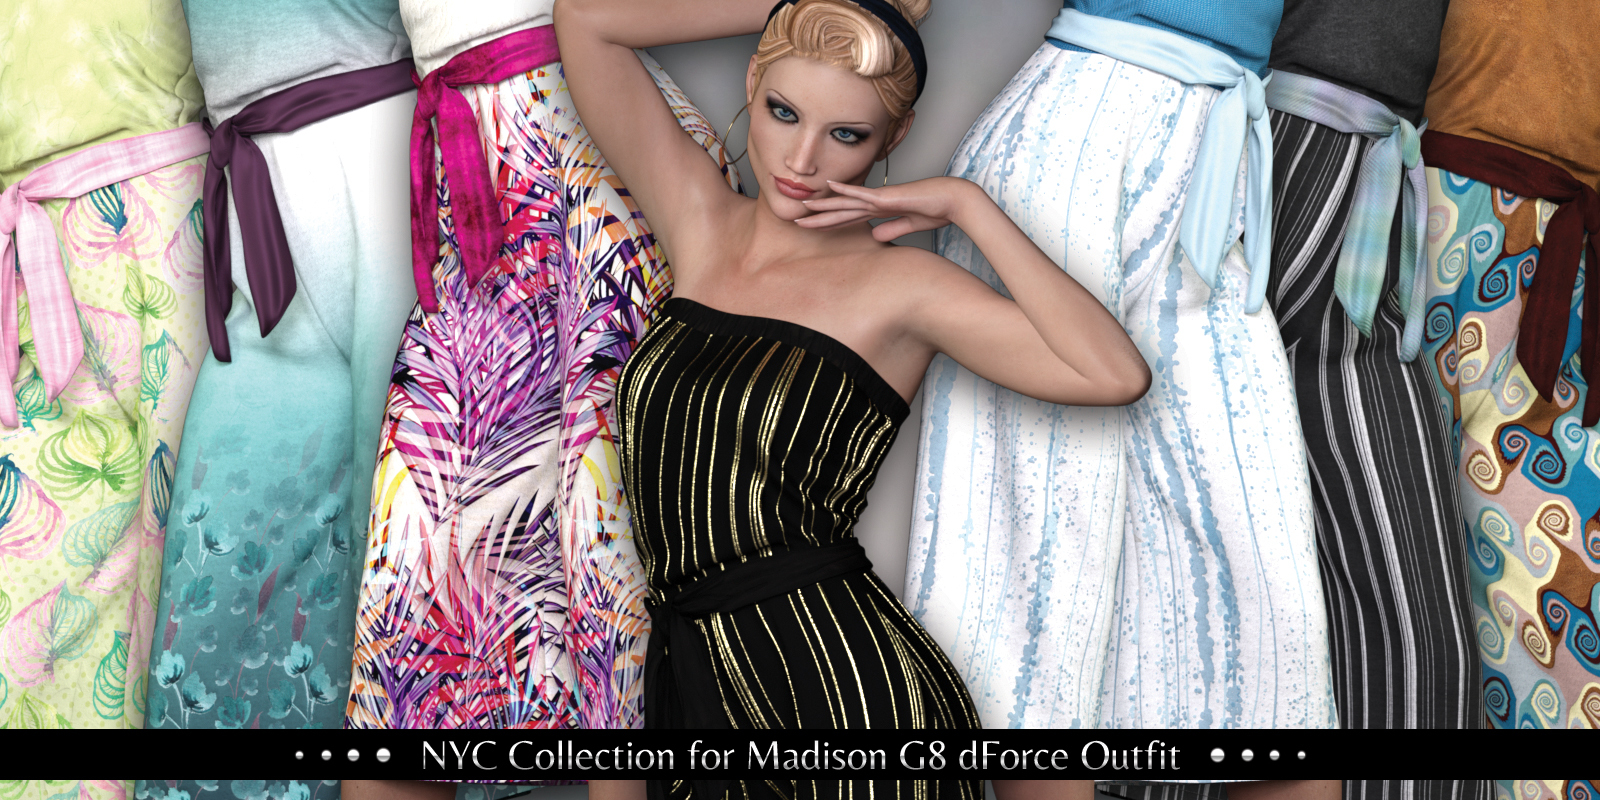 NYC Collection: Madison G8 dForce